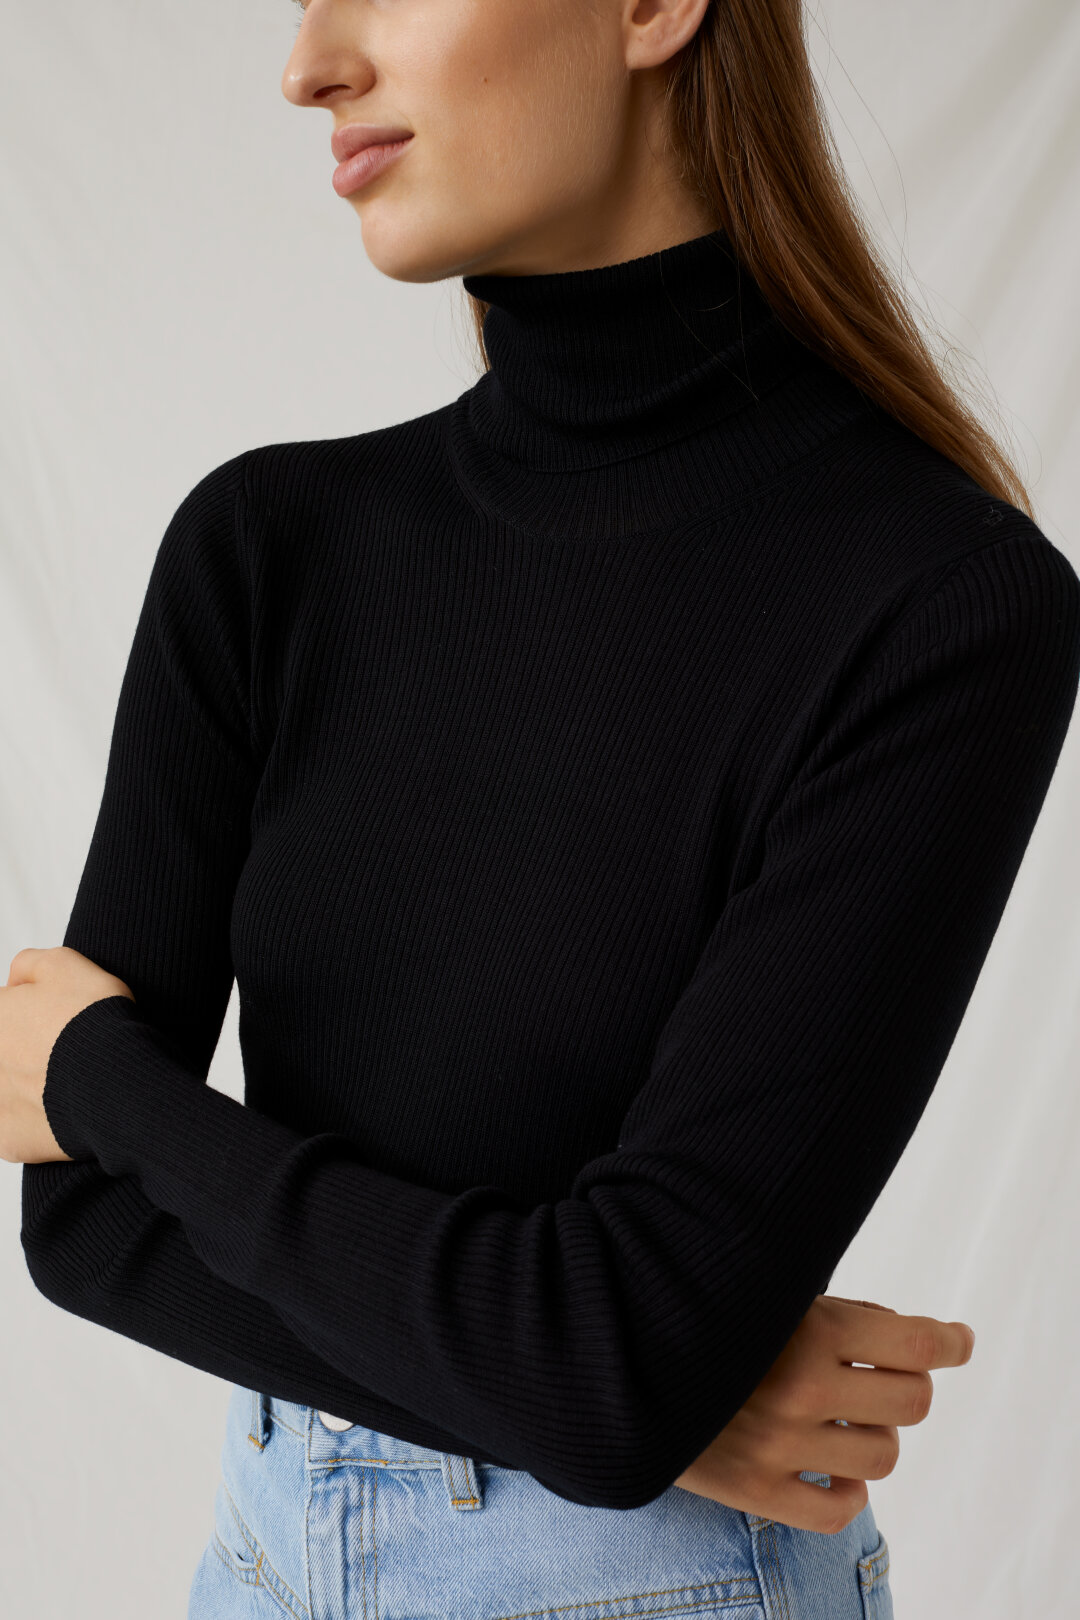 Virgin Wool Turtle Neck Sweater